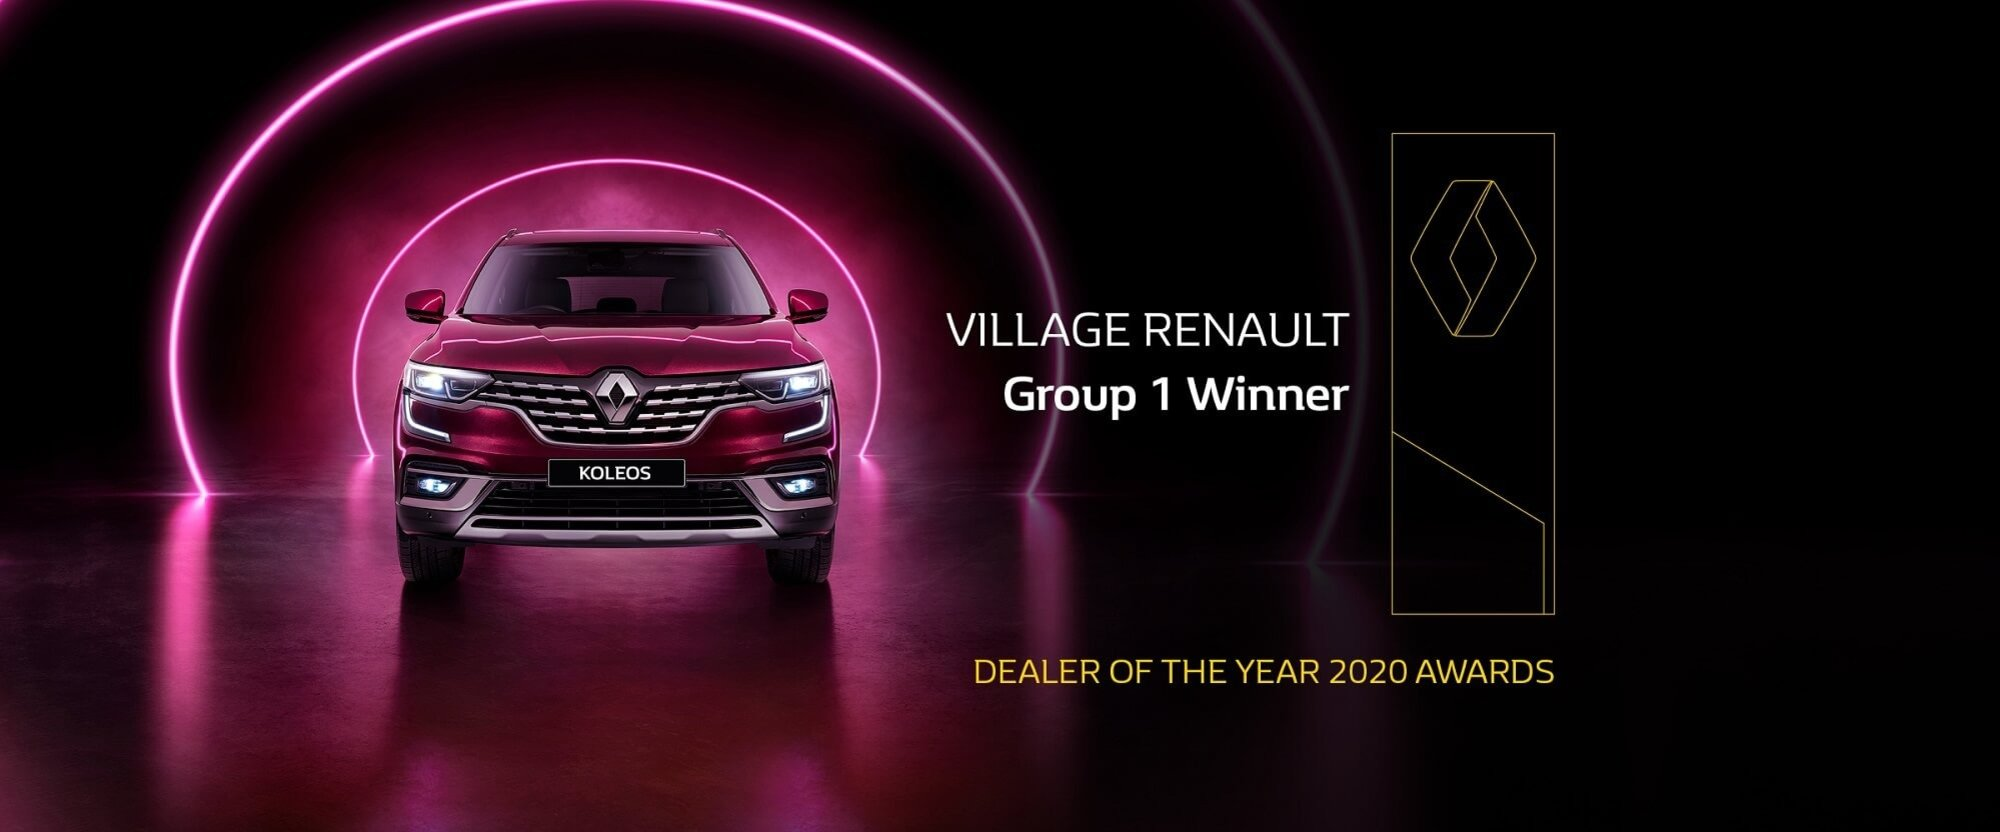 Village Renault Dealer of the Year 2020